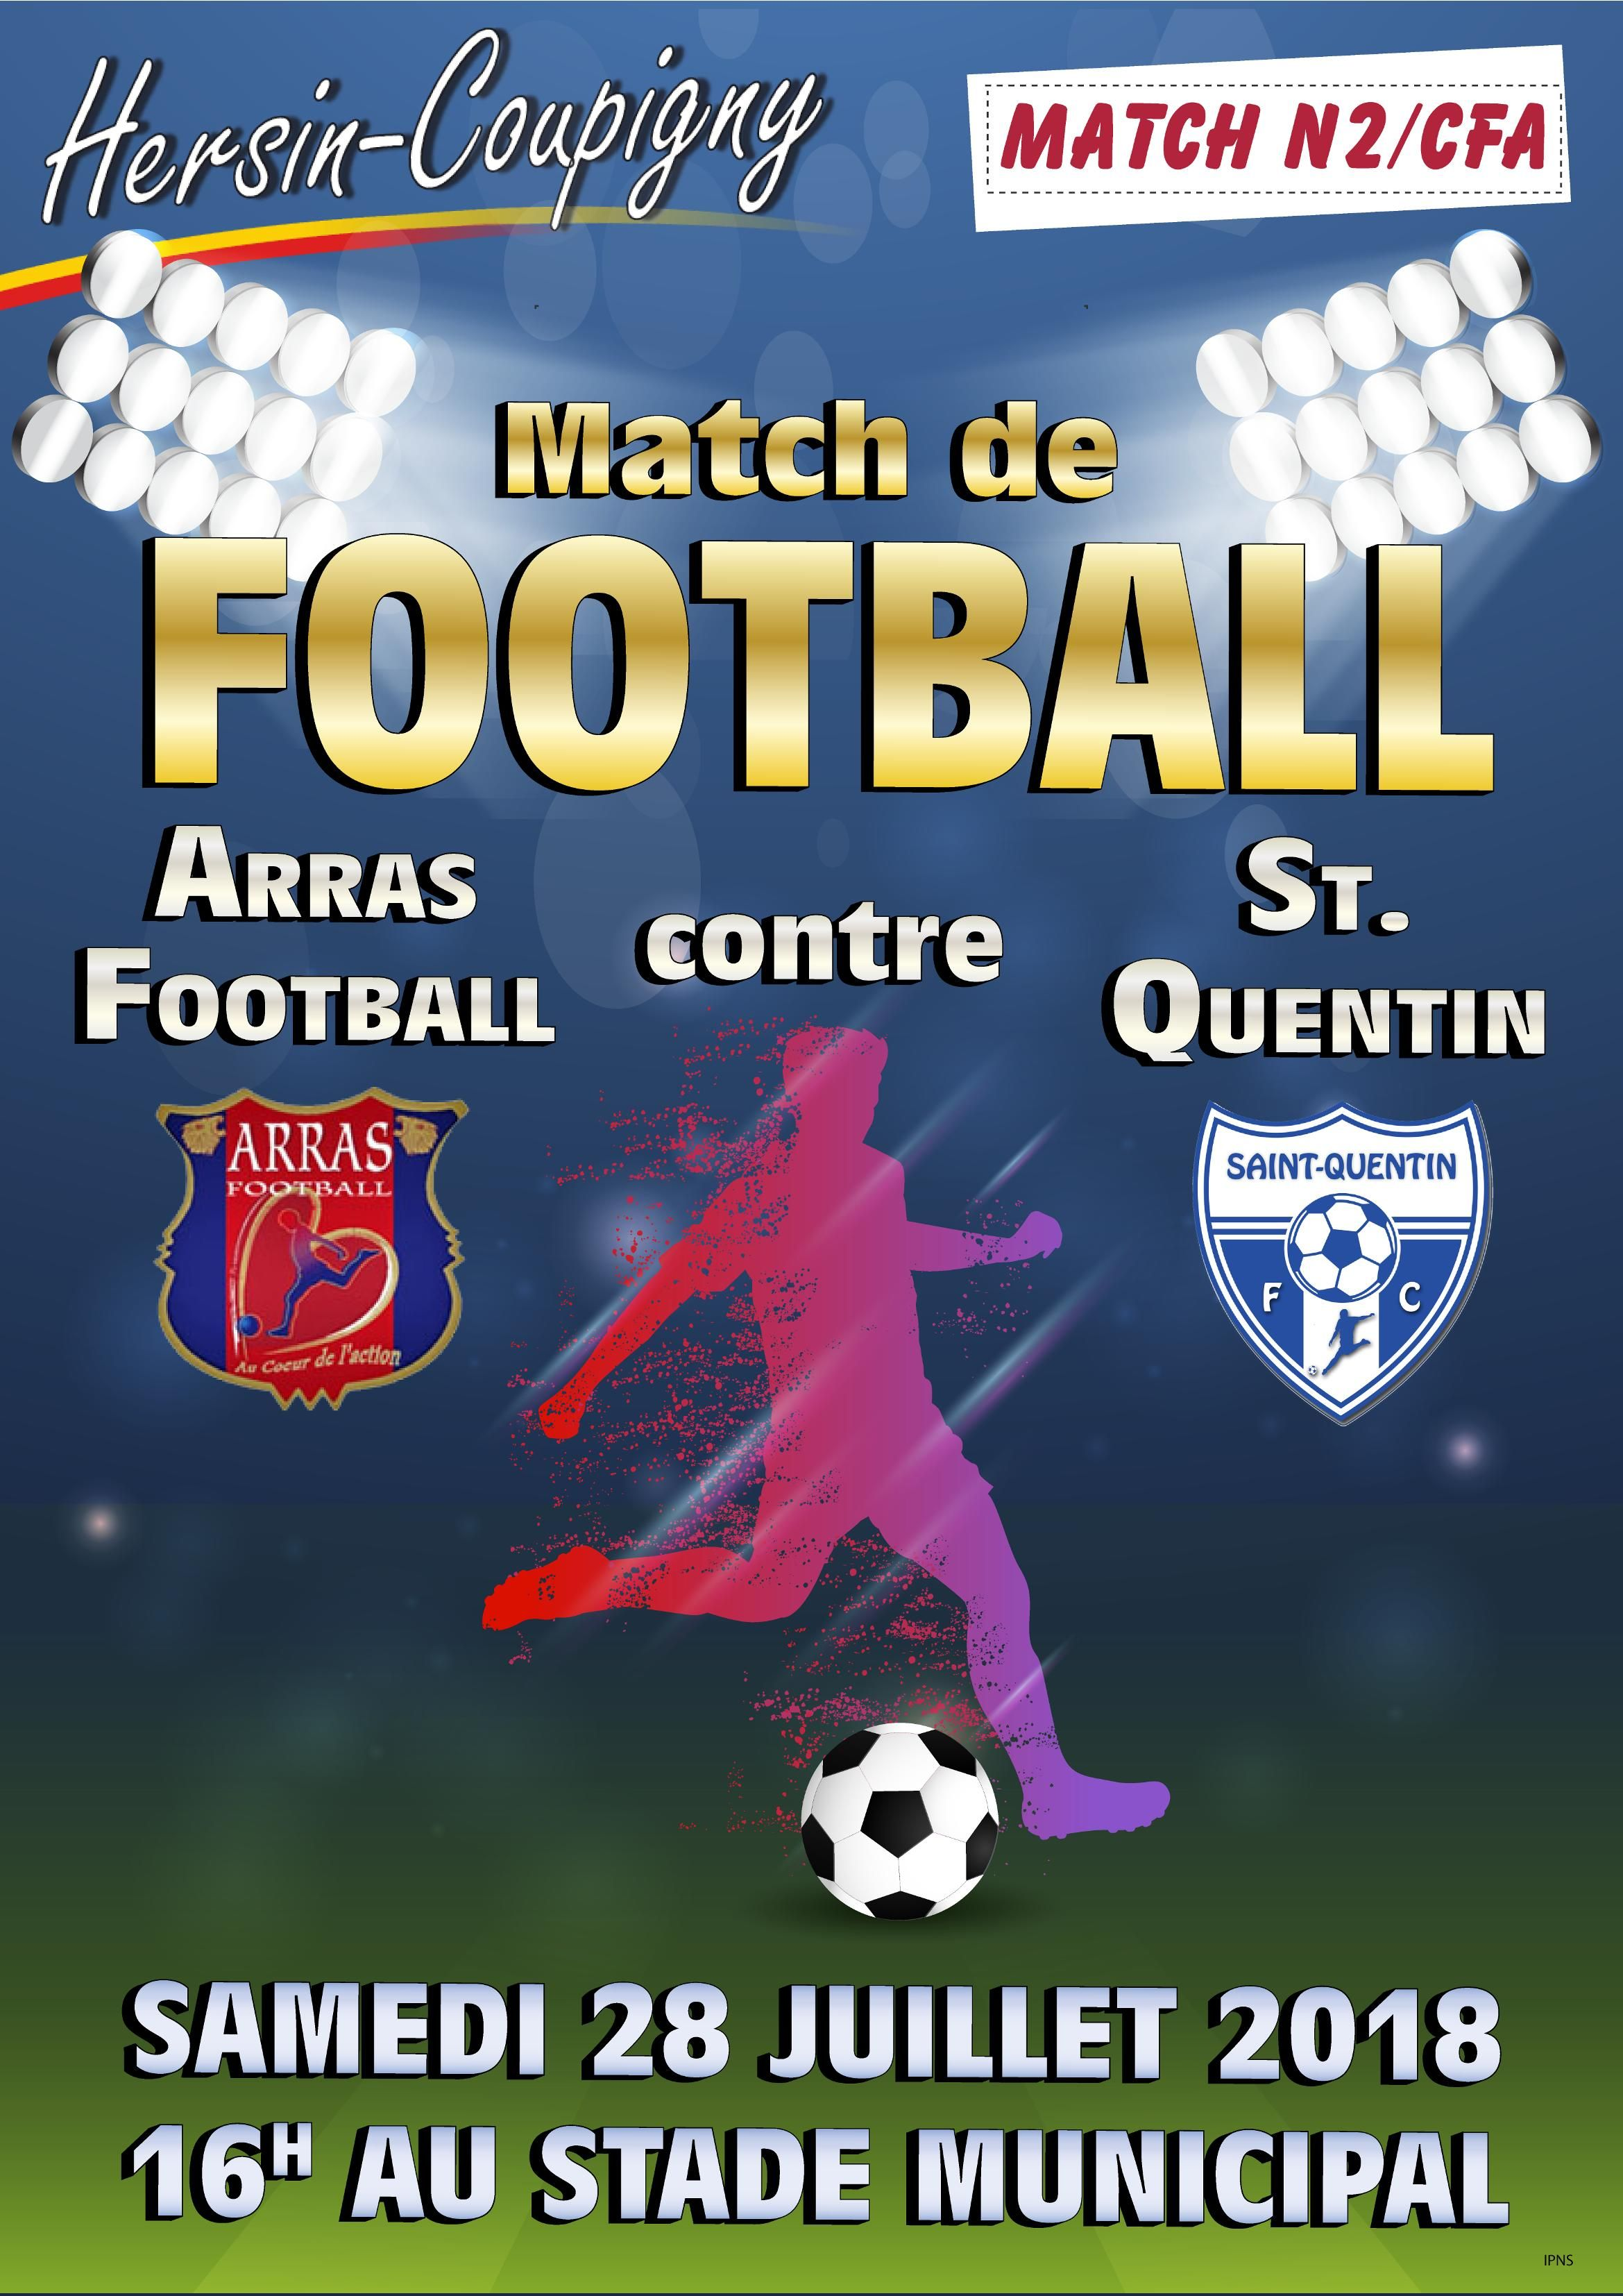 Match de football Arras (N2) - St-Quentin (CFA)